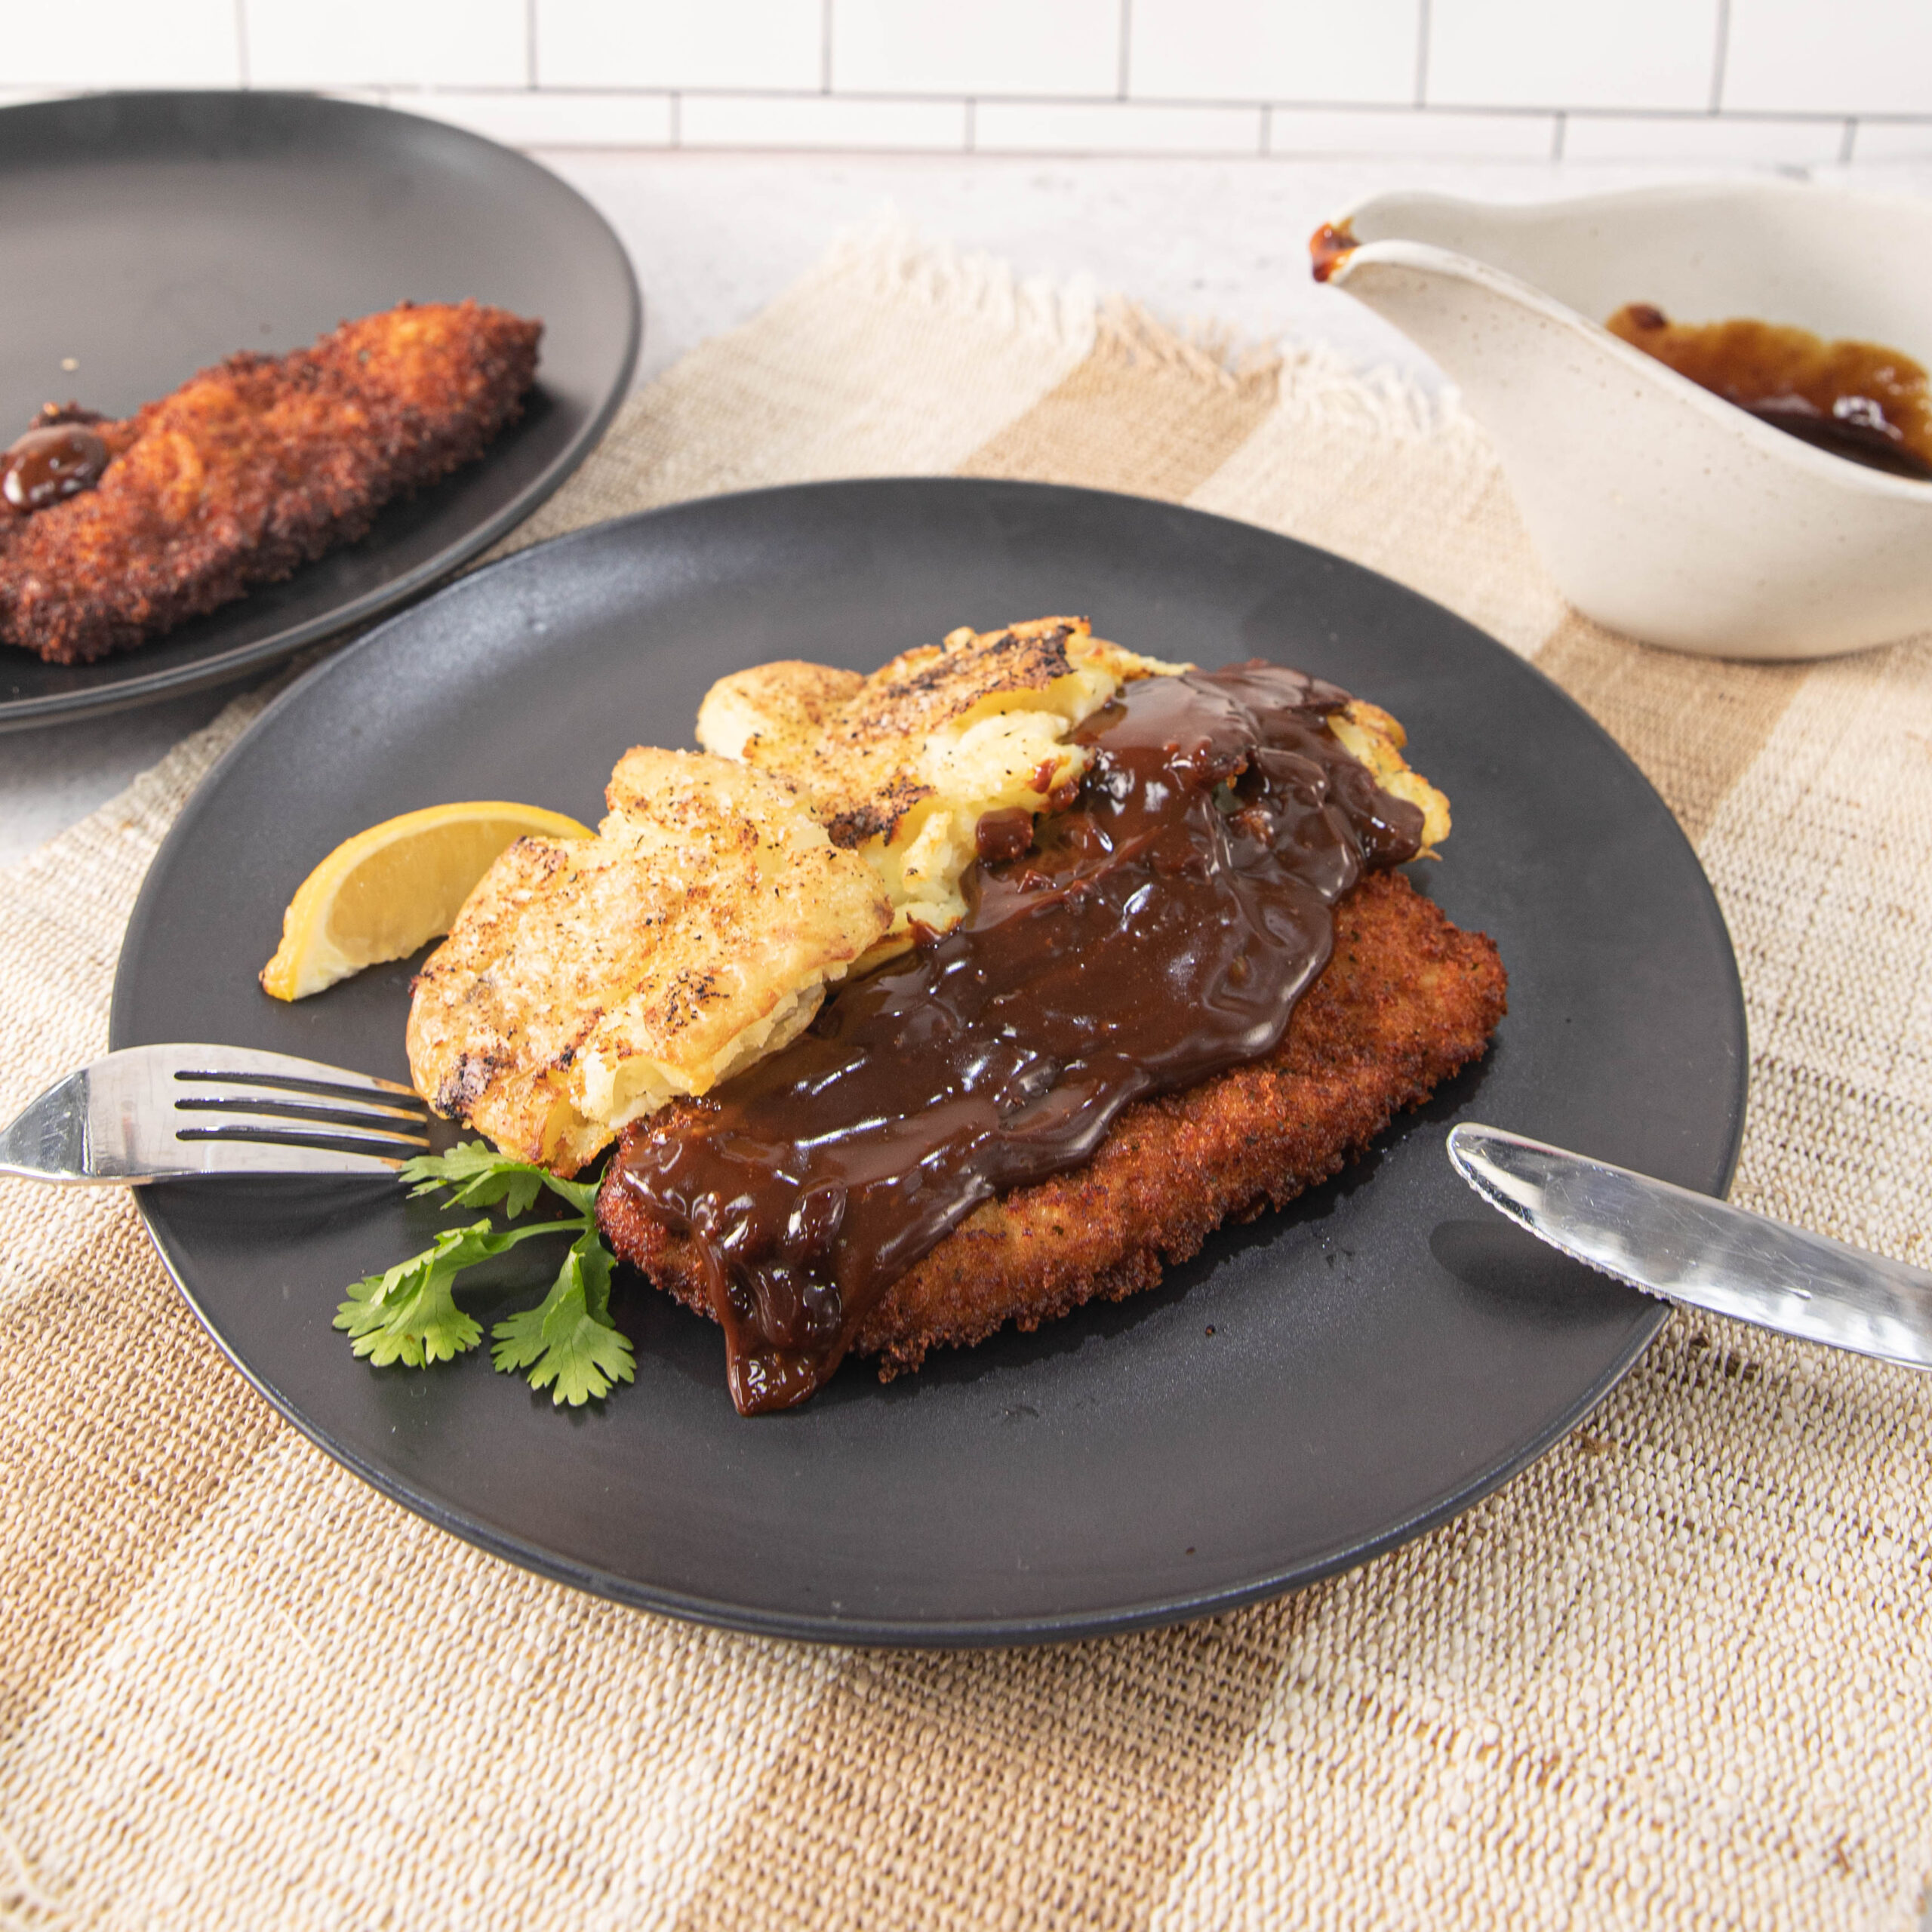 Three Aussie Farmers Schnitzels with Guinness Gravy and Crushed Potatoes